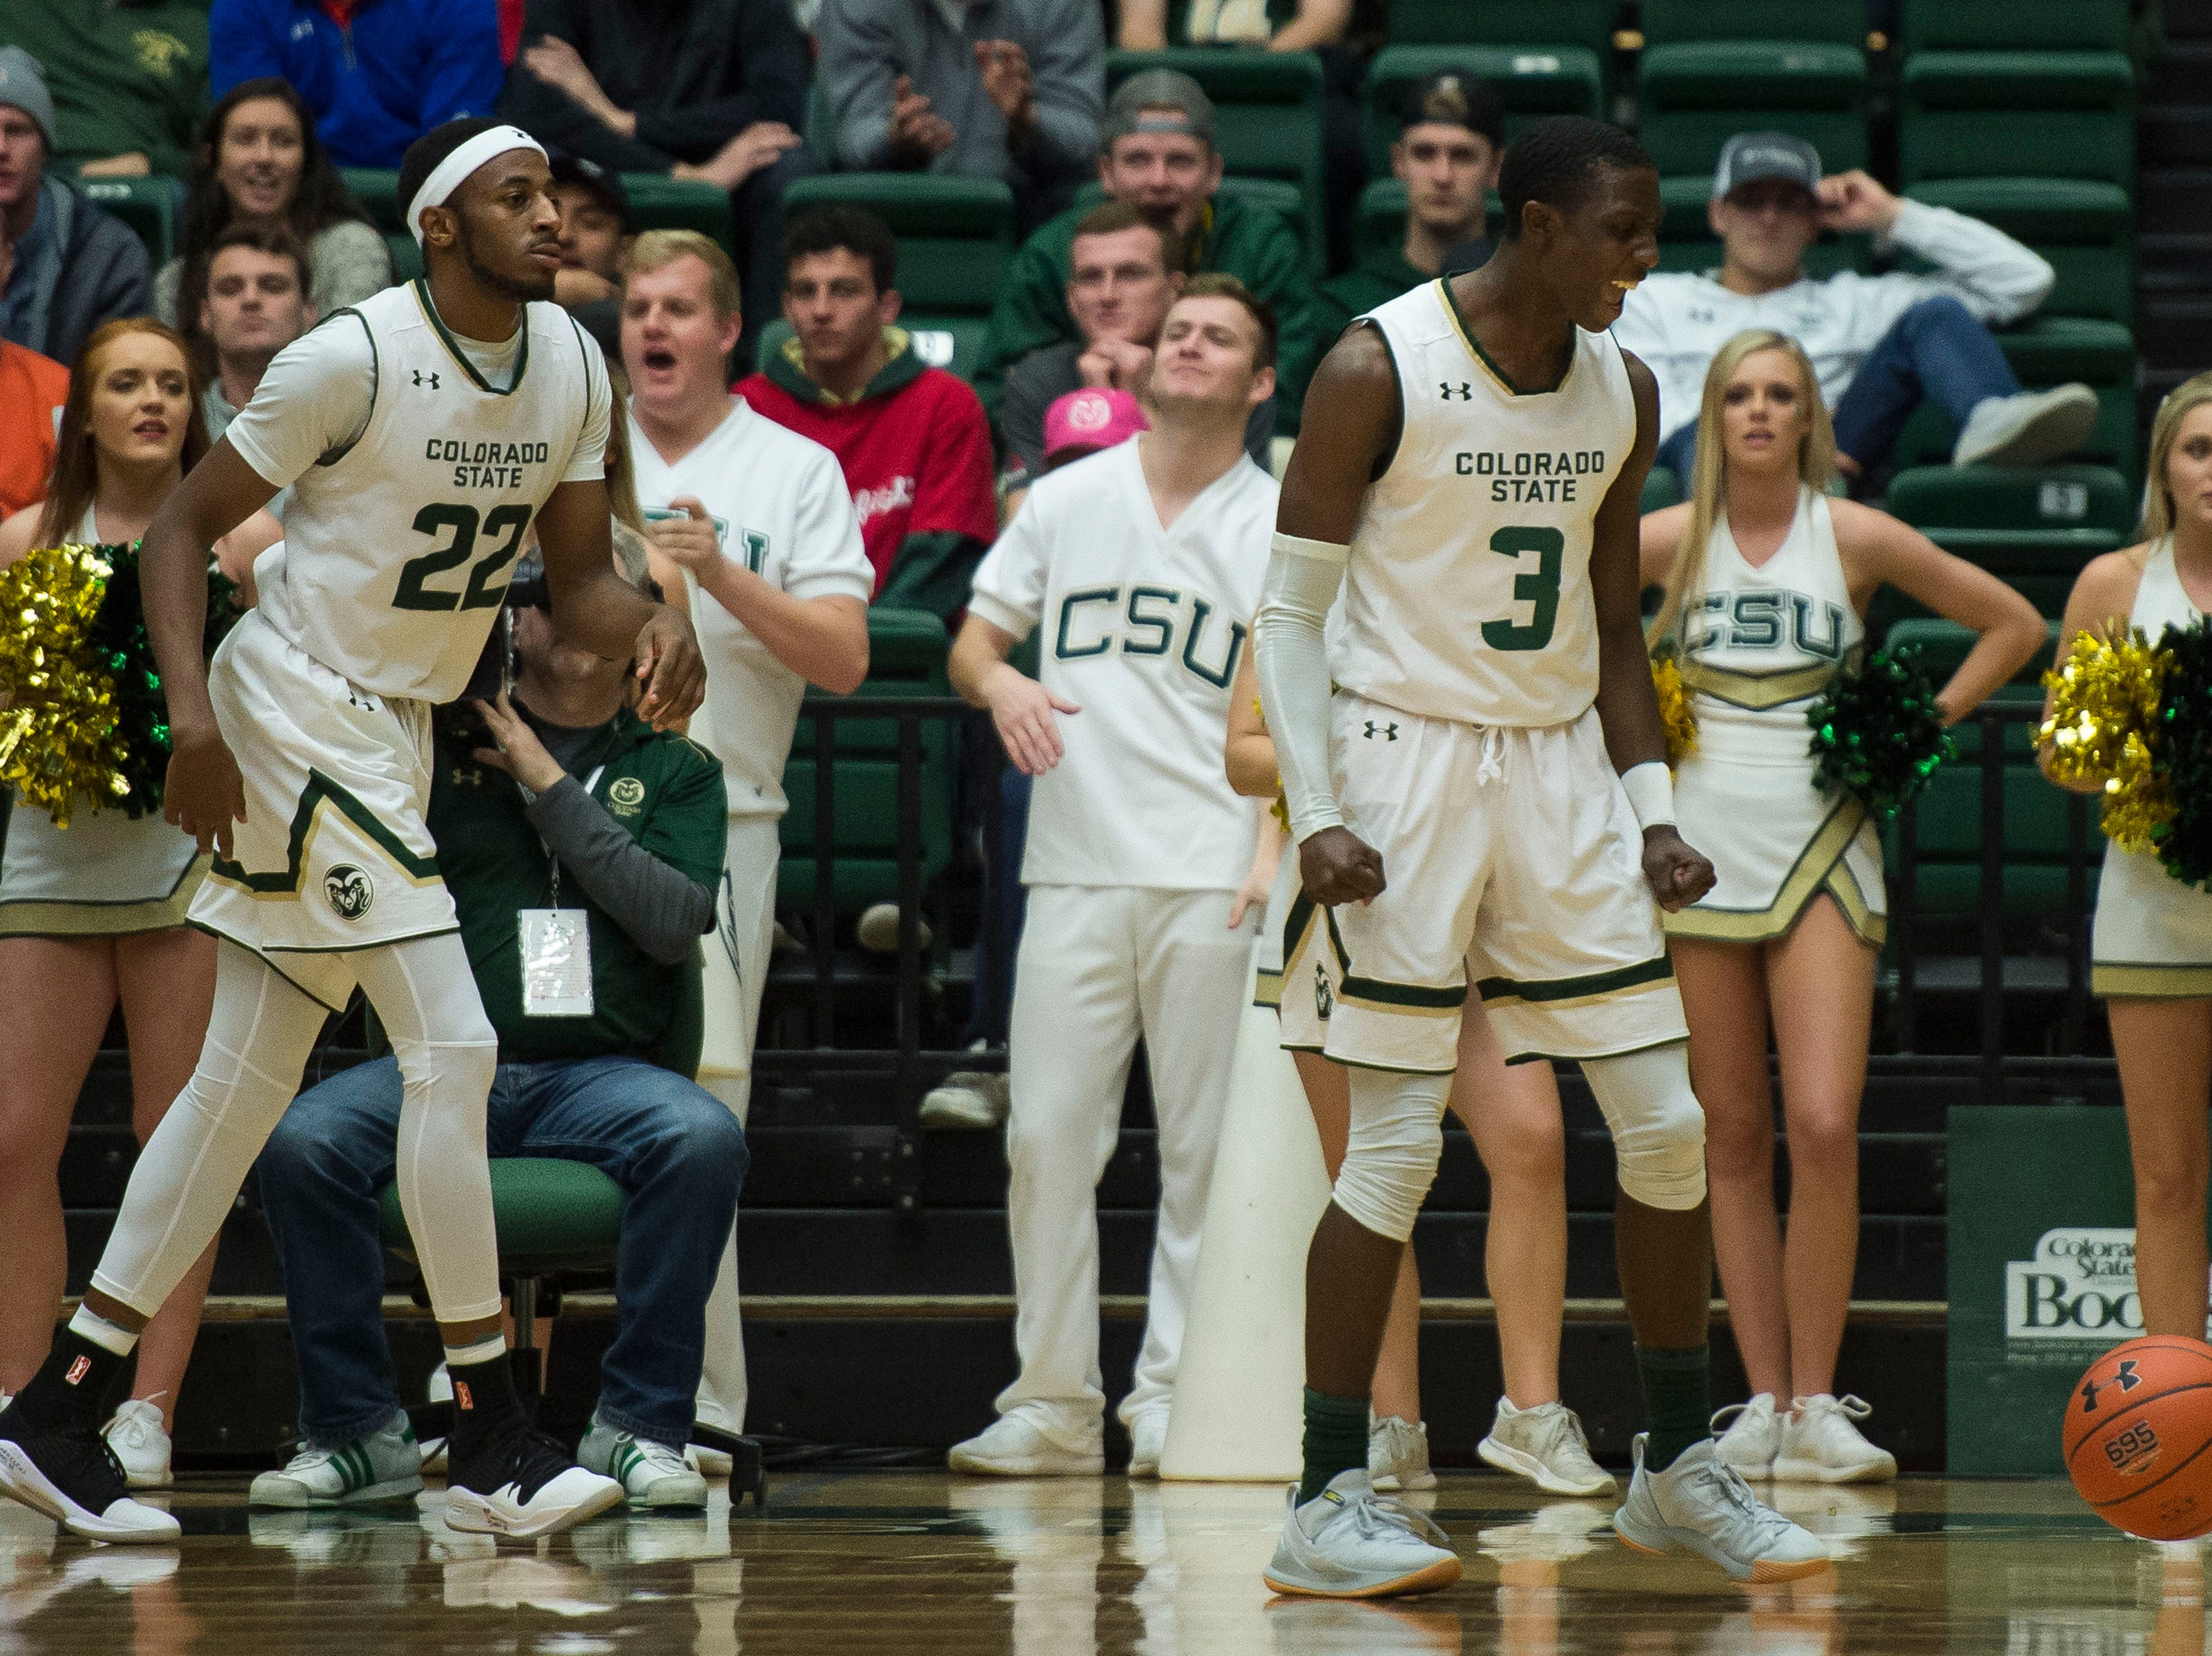 Colorado State University freshman guard Kendle Moore (3) celebrates after a play against the Air Force Academy on Tuesday, Jan. 8, 2019, at Moby Arena in Fort Collins, Colo.